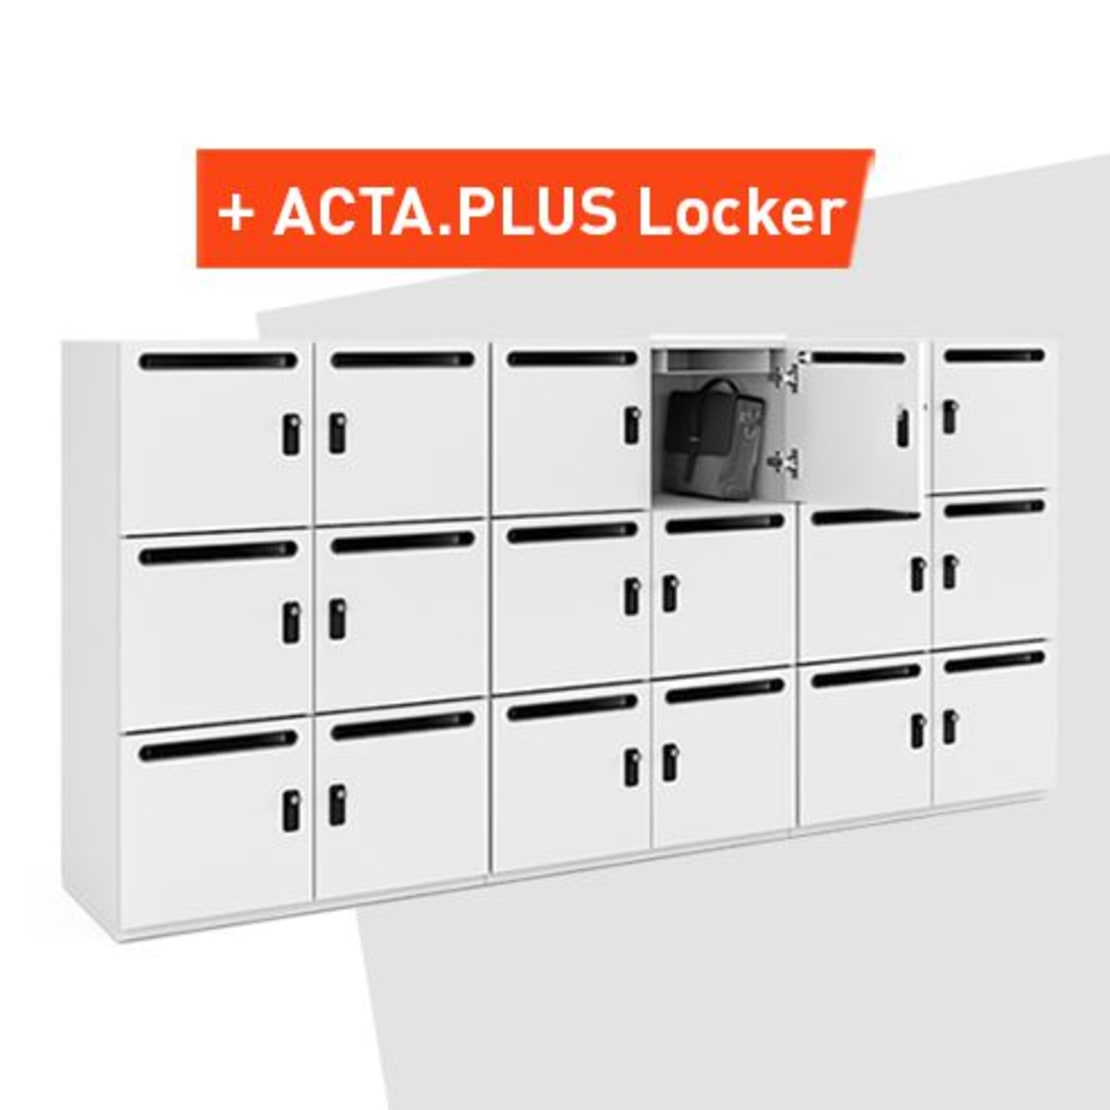 Locker cabinets for storing personal documents in the office